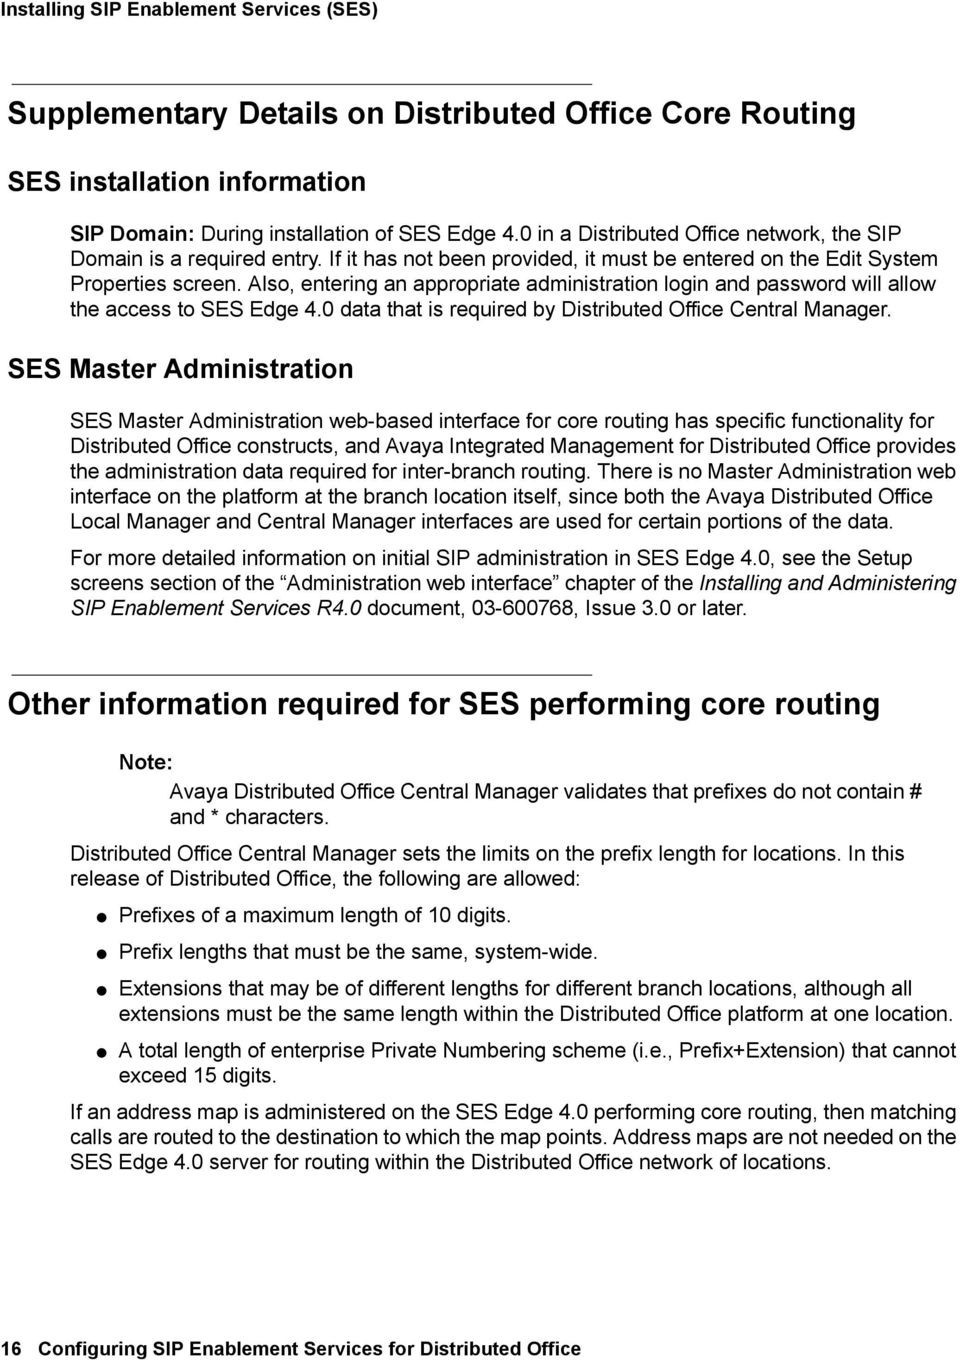 Also, entering an appropriate administration login and password will allow the access to SES Edge 4.0 data that is required by Distributed Office Central Manager.